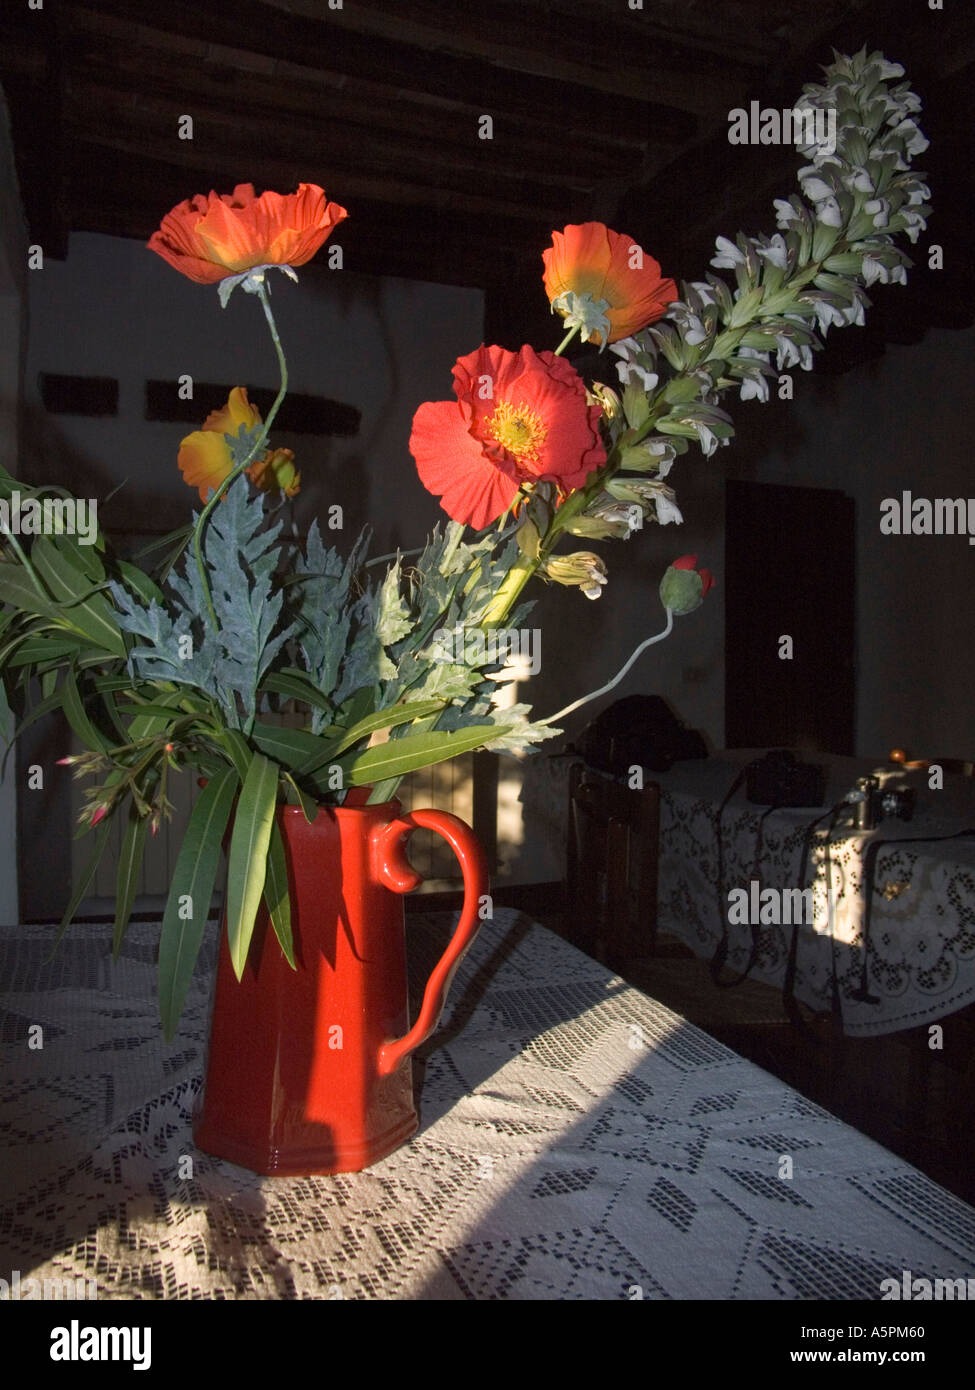 Flowers in a home in the village - Stock Image